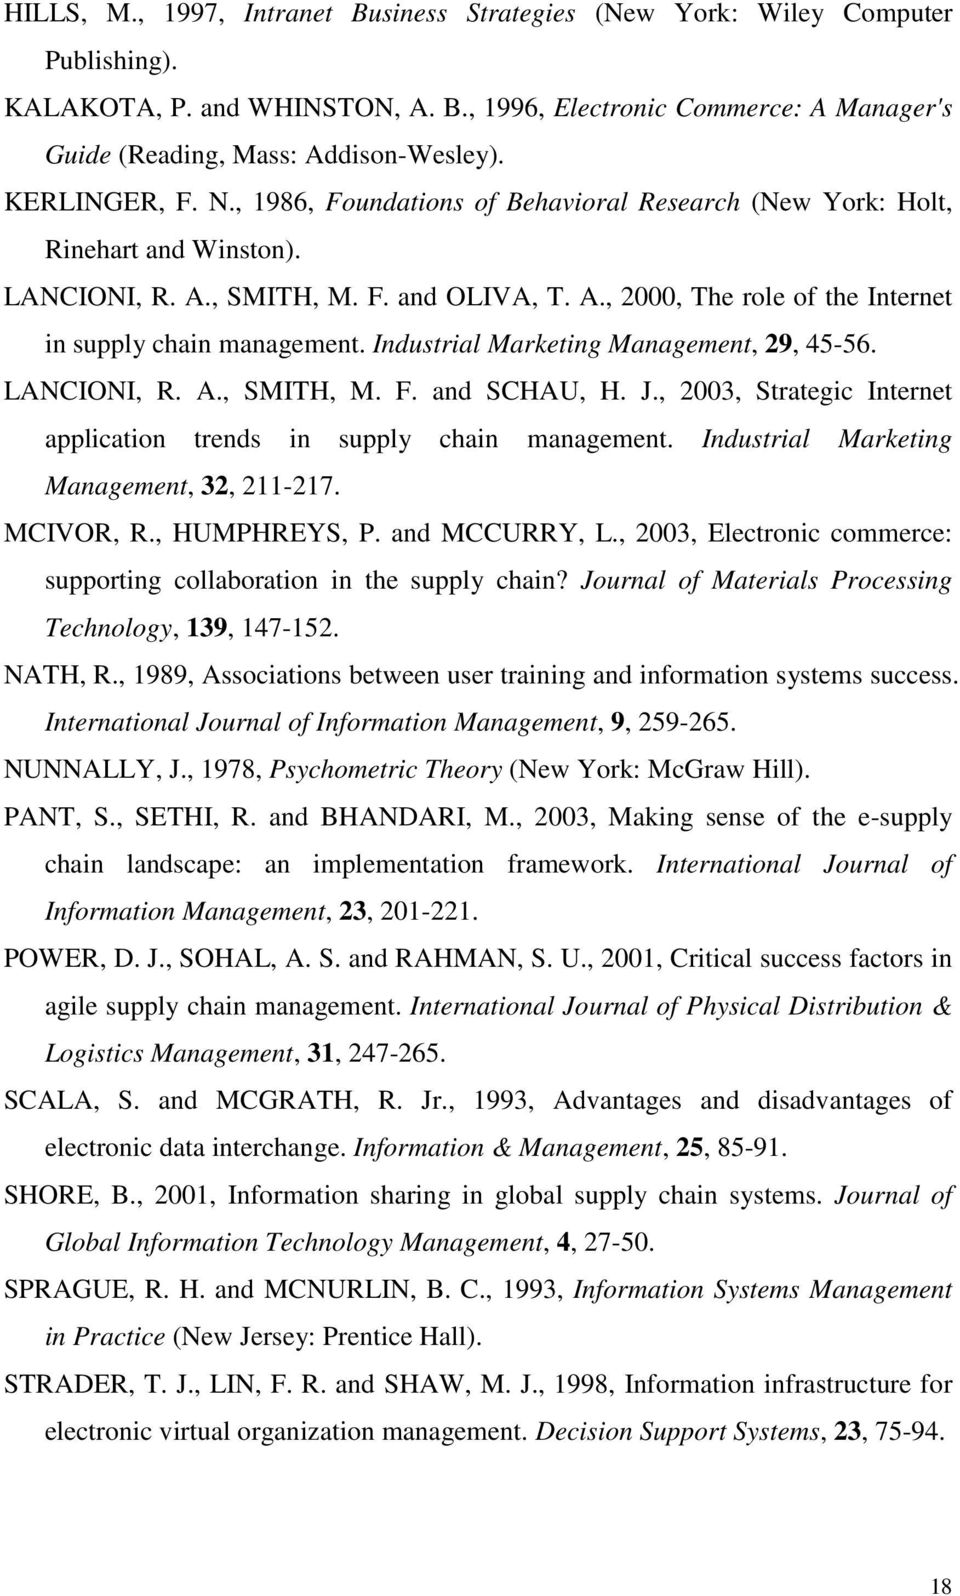 Industrial Marketing Management, 29, 45-56. LANCIONI, R. A., SMITH, M. F. and SCHAU, H. J., 2003, Strategic Internet application trends in supply chain management.